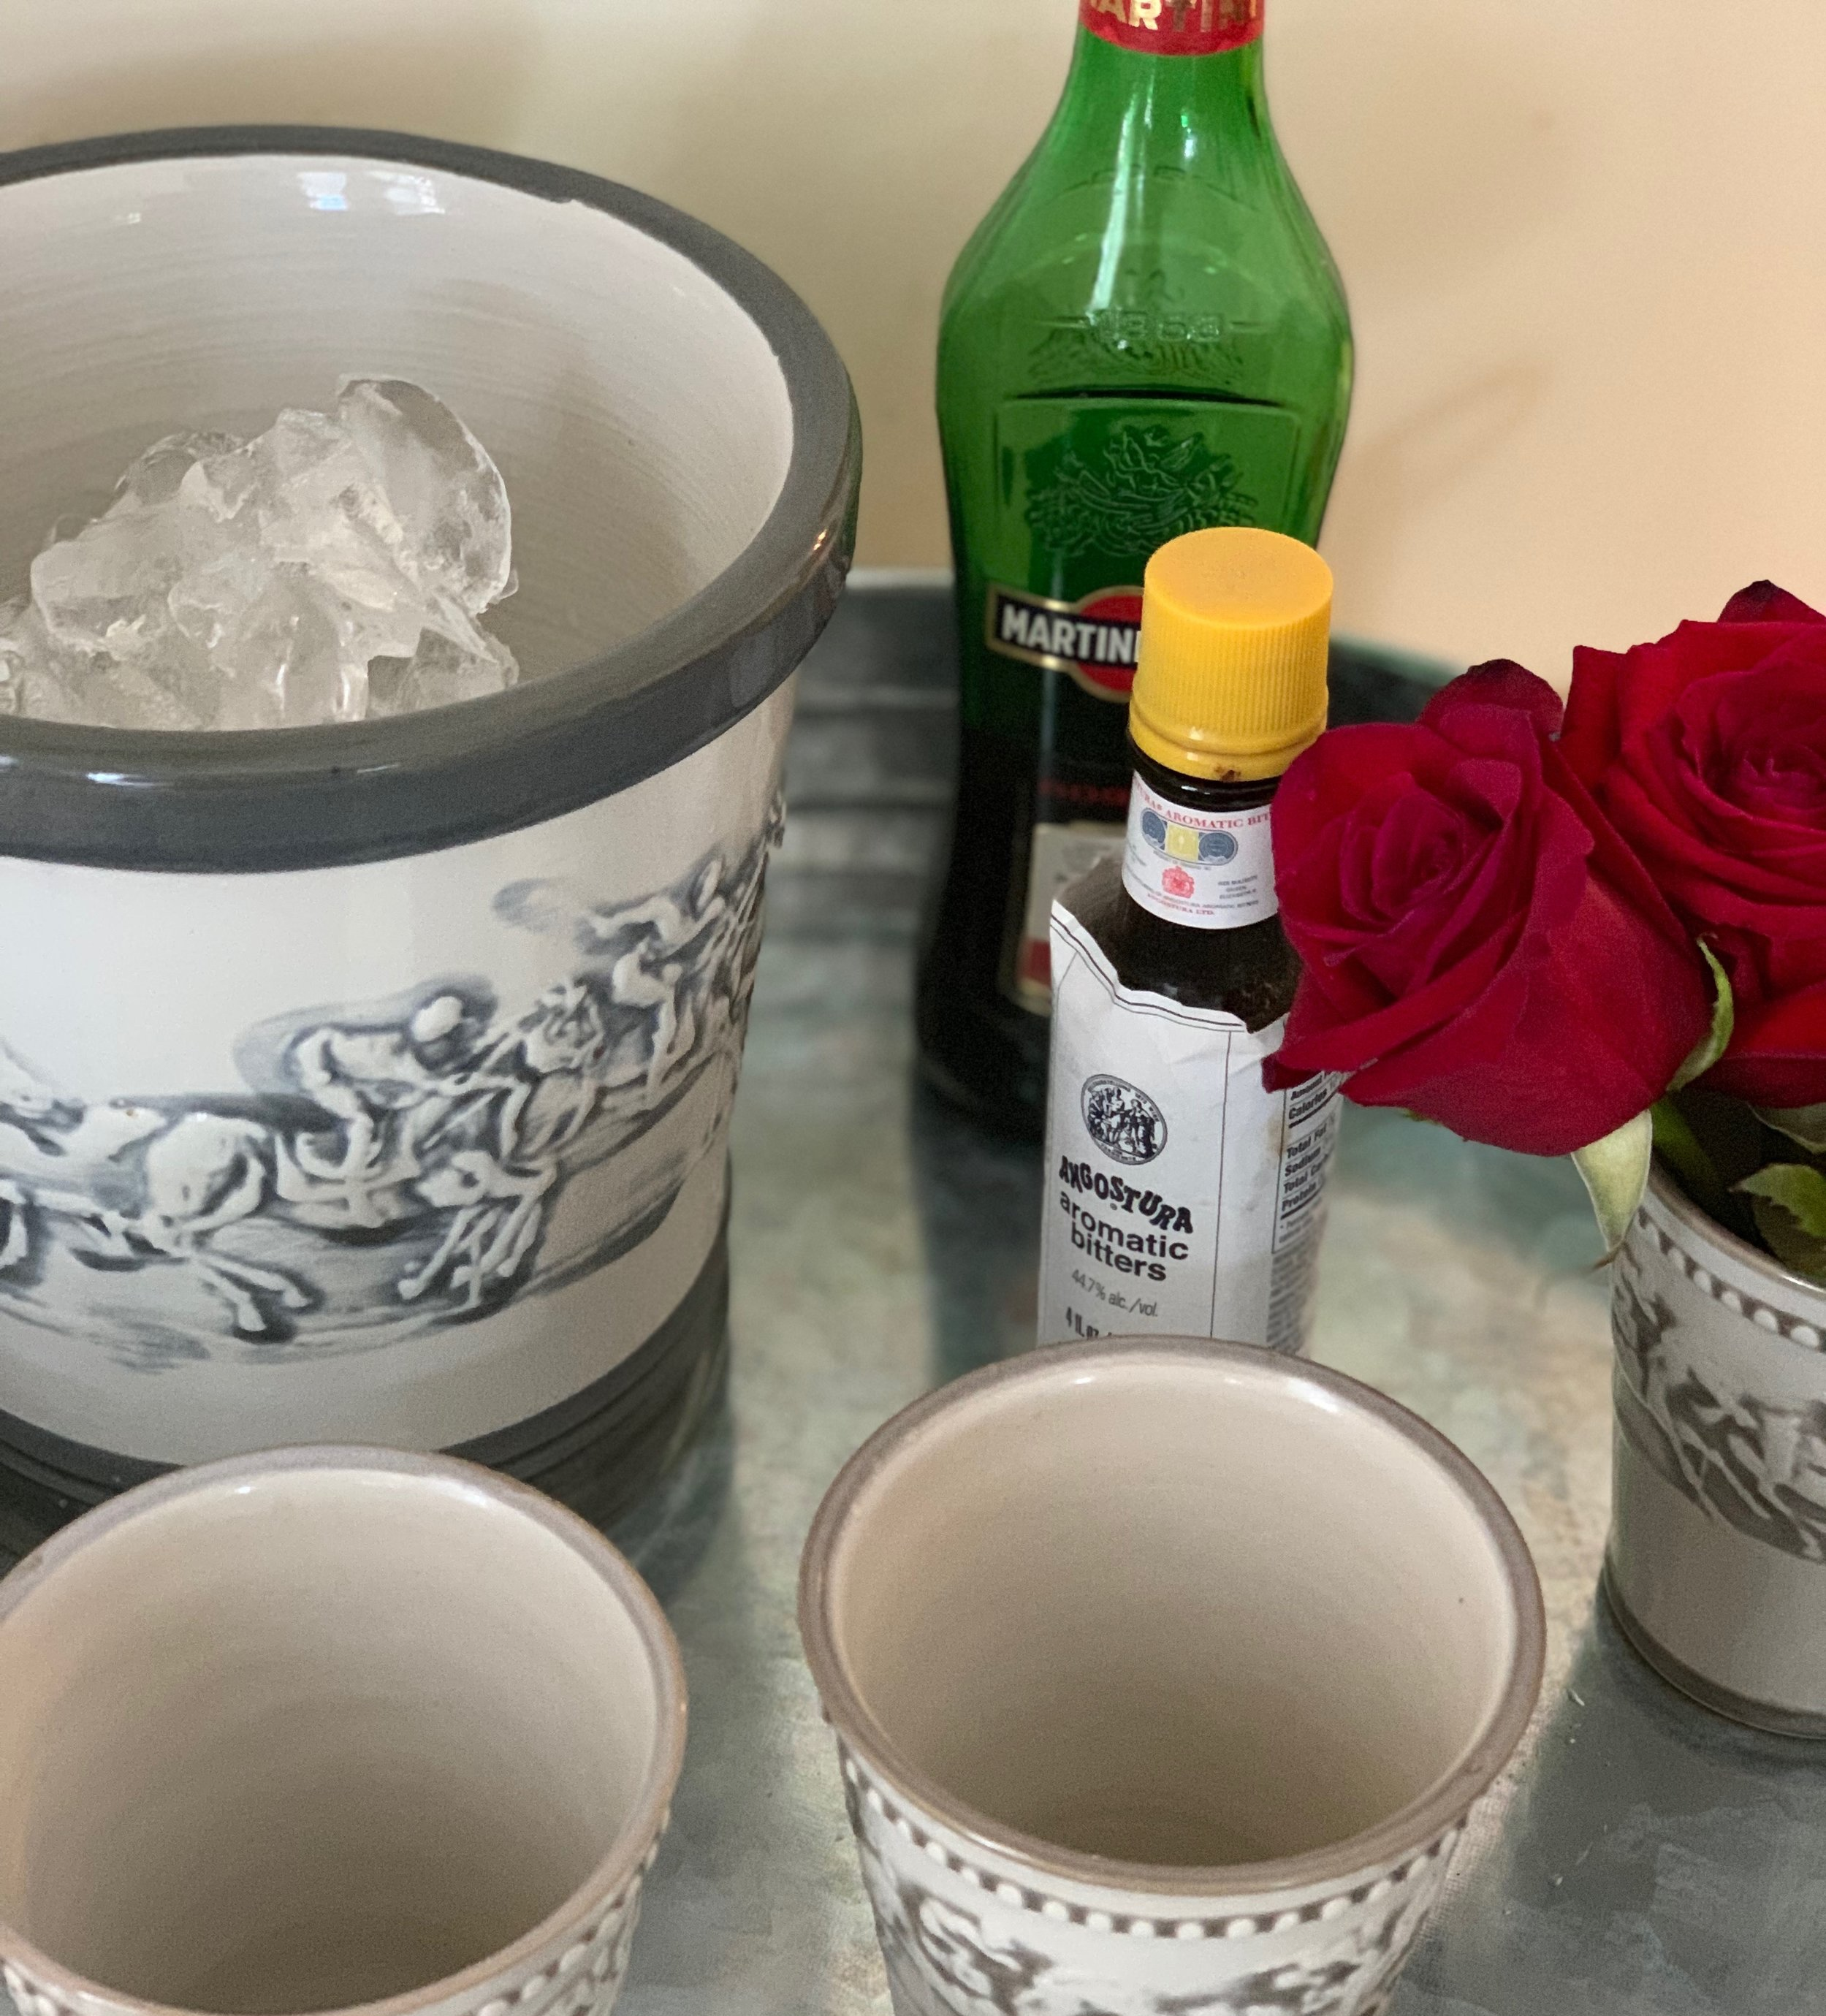 Stoneware Julep Cups  serve double duty as THE CUTEST vases for flowers!